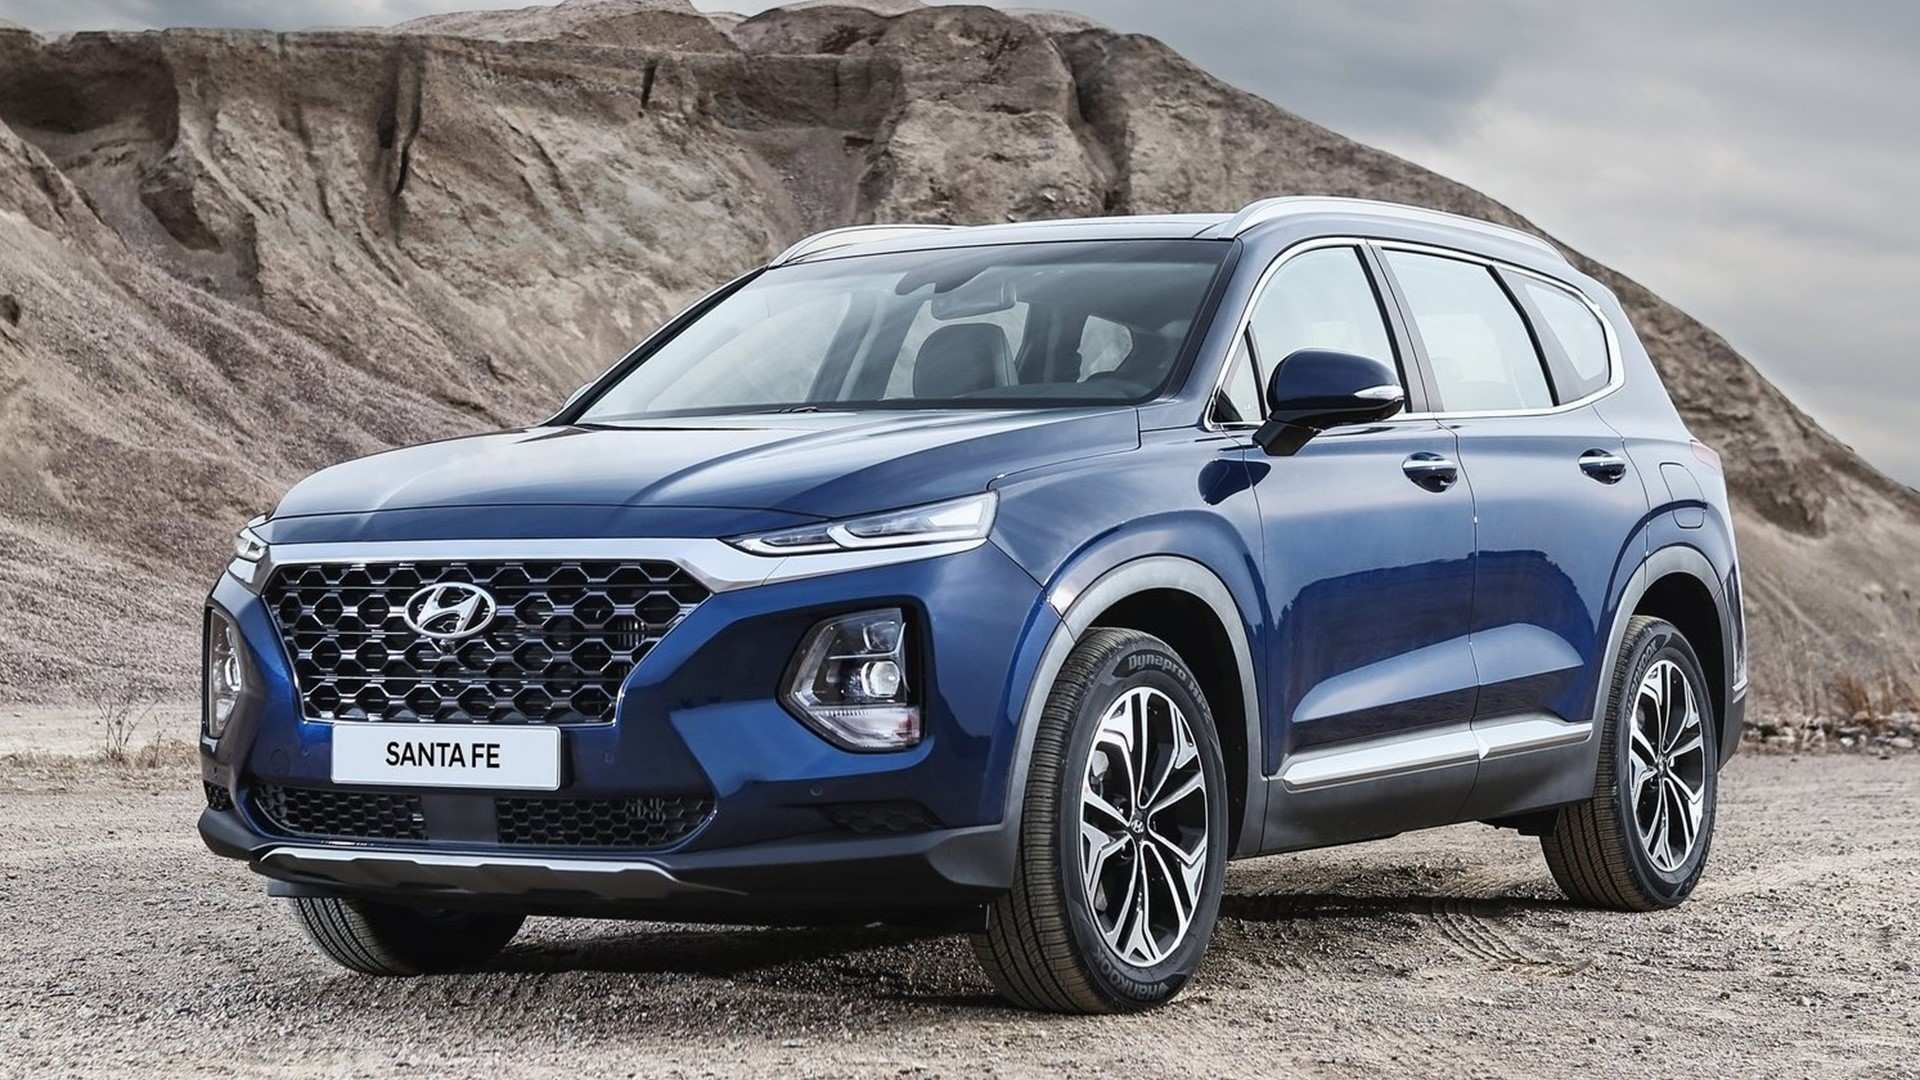 80 New 2019 Santa Fe Sports Images